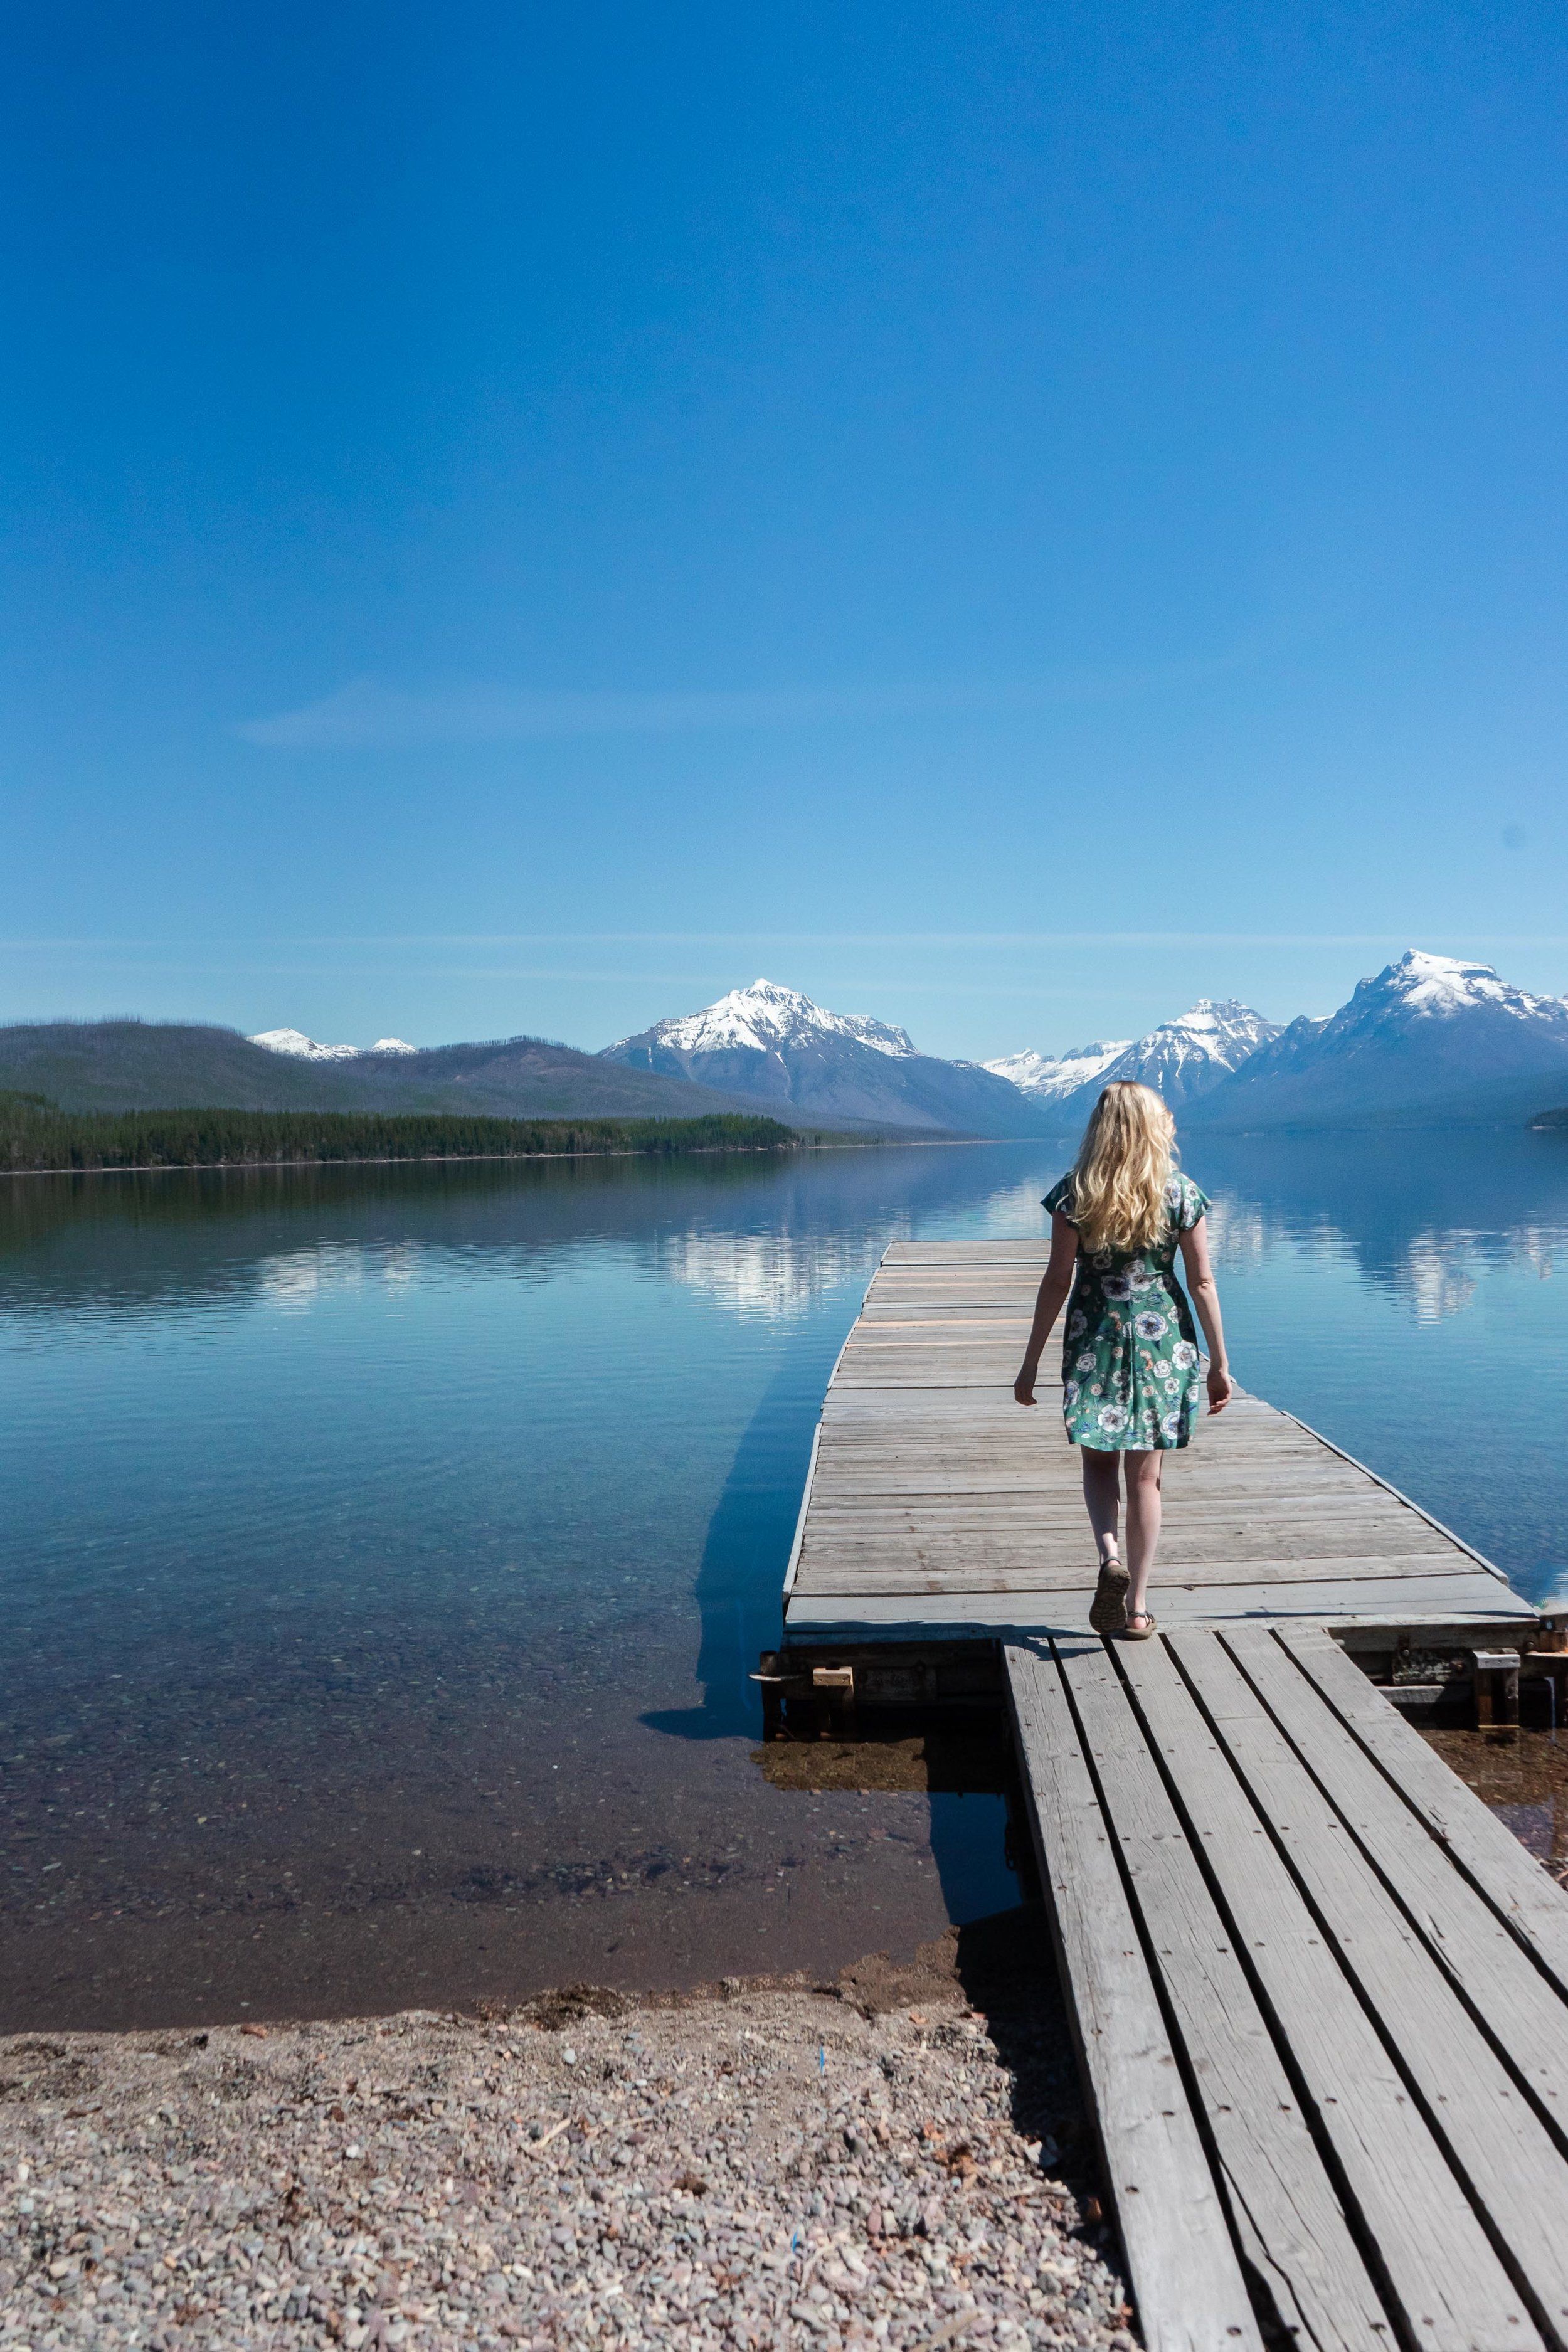 Beautiful snow capped mountains in the spring at Lake McDonald in Glacier National Park near Kalispell and Whitefish, Montana. Bri Sul wearing a floral dress by Stitch Fix and Teva sandals